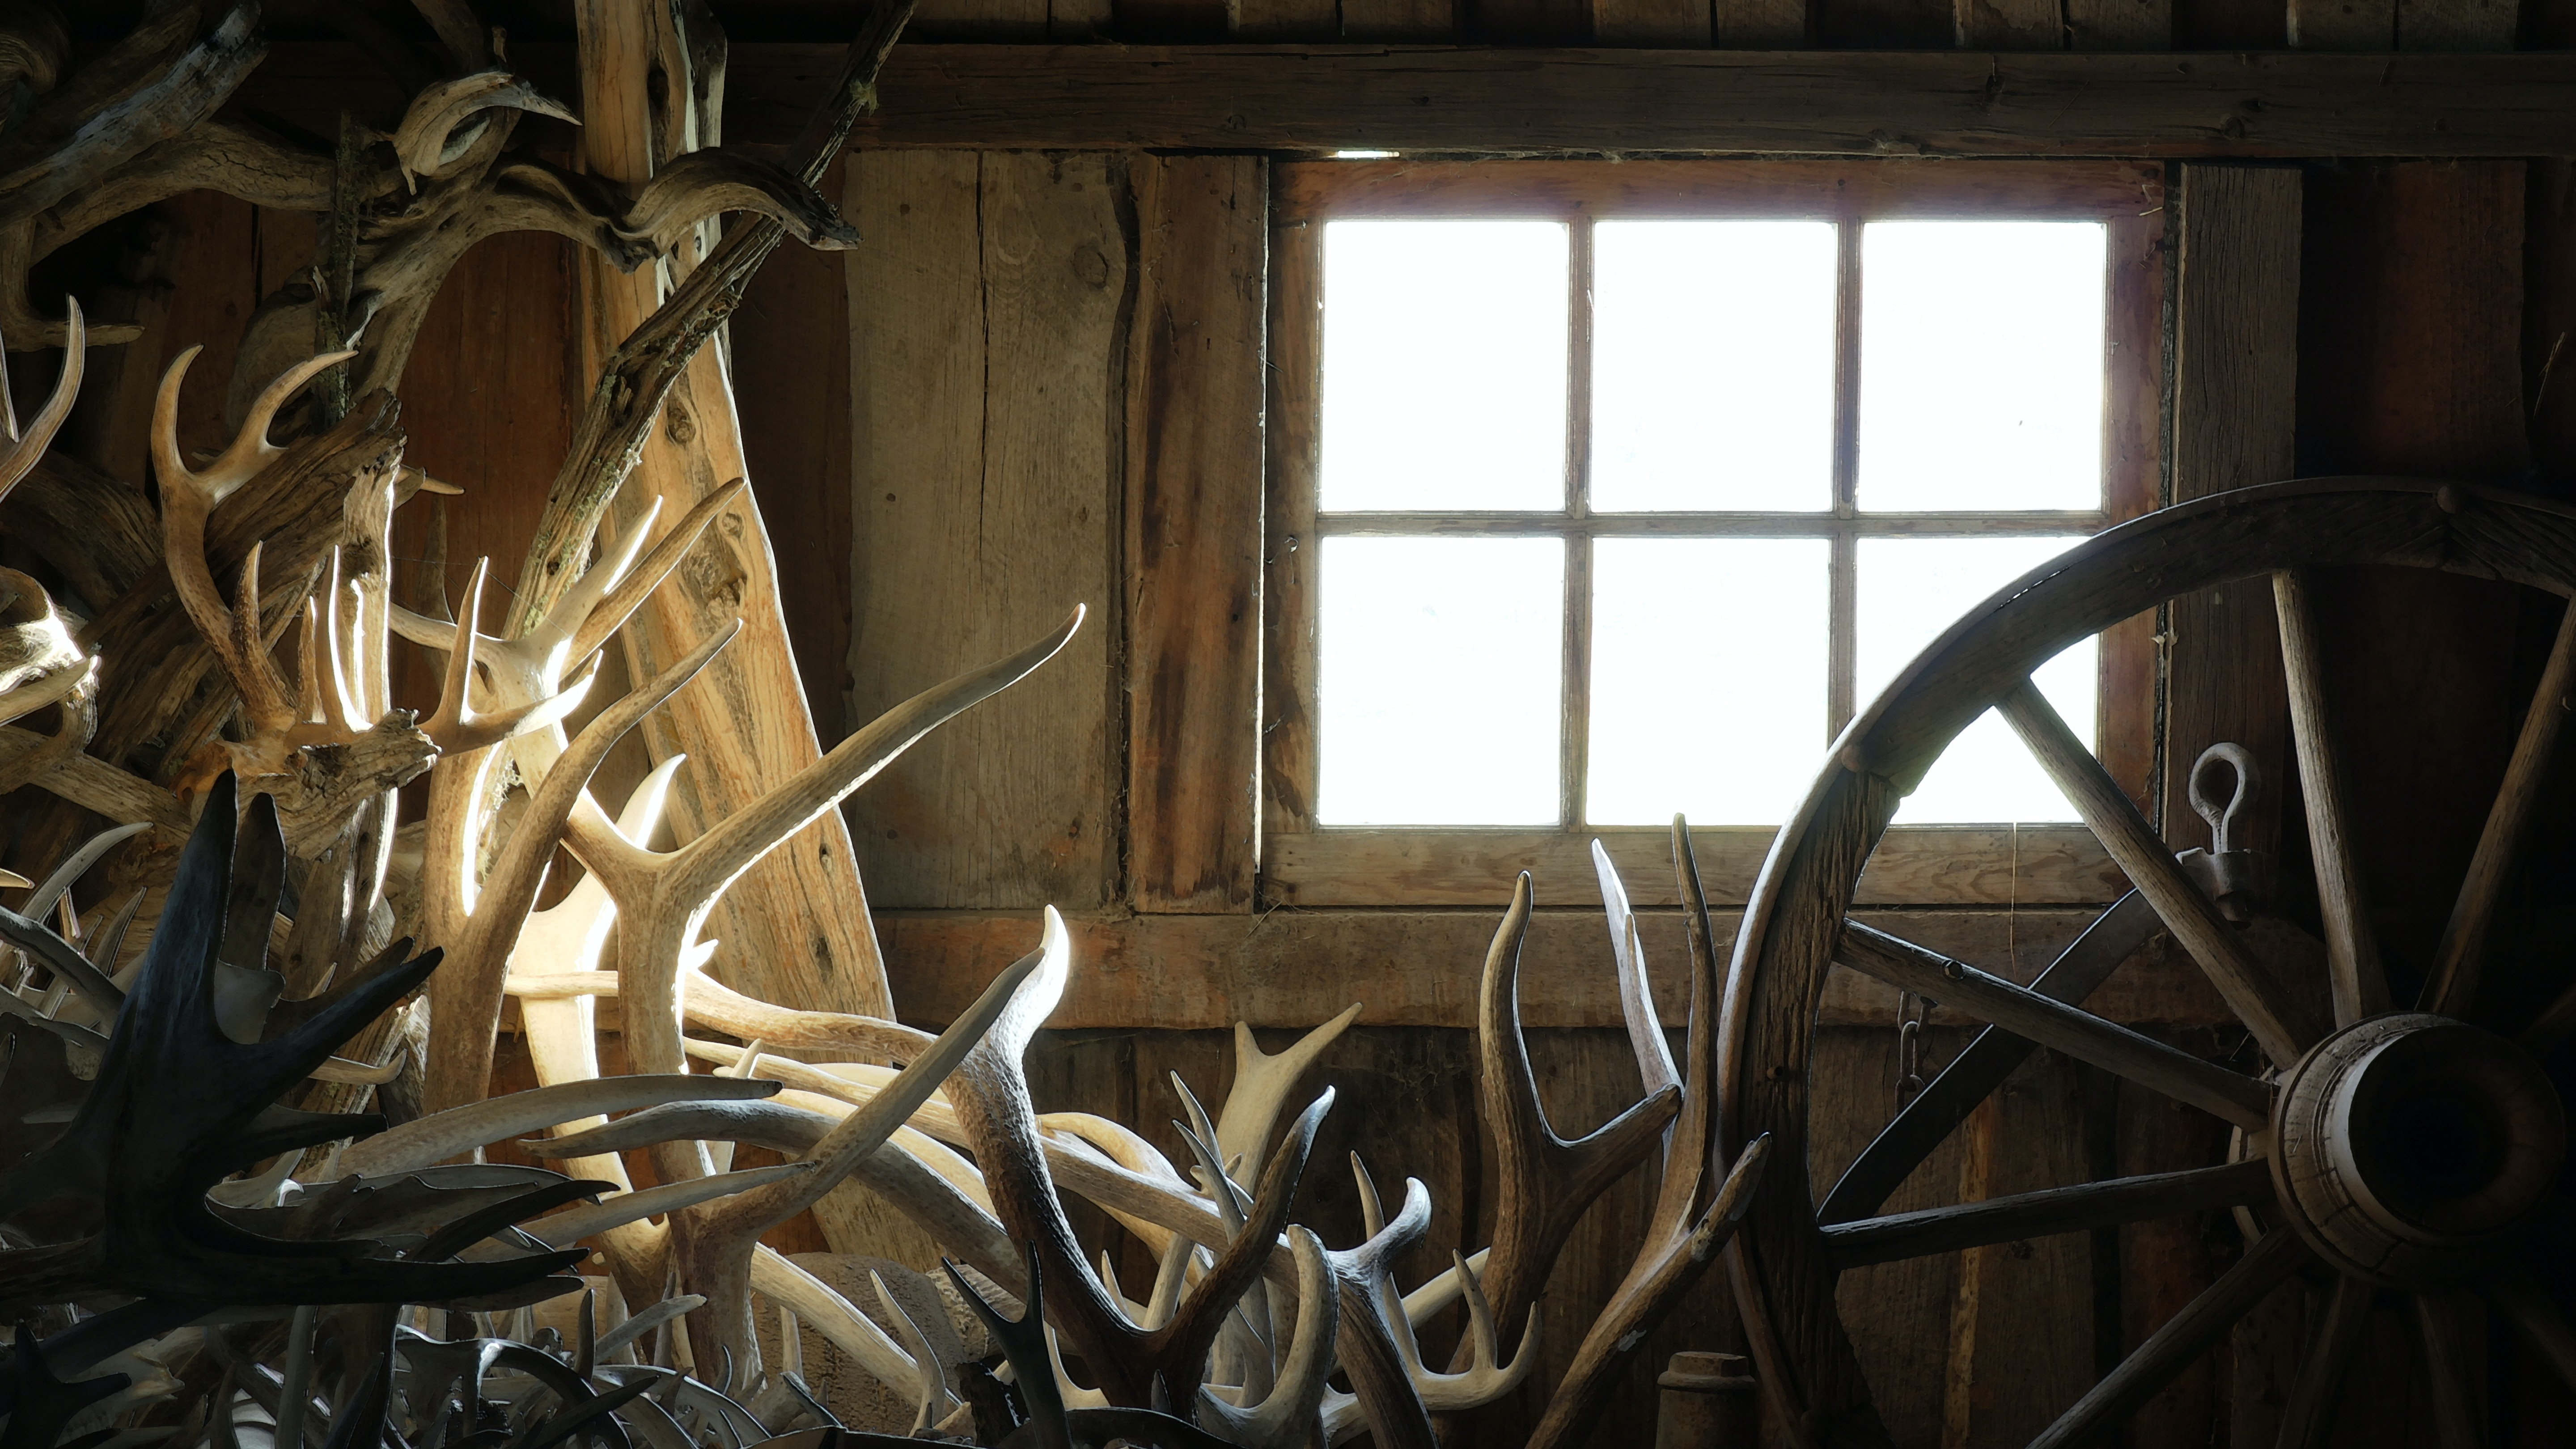 A collection of antlers and a wagon wheel inside a shed.